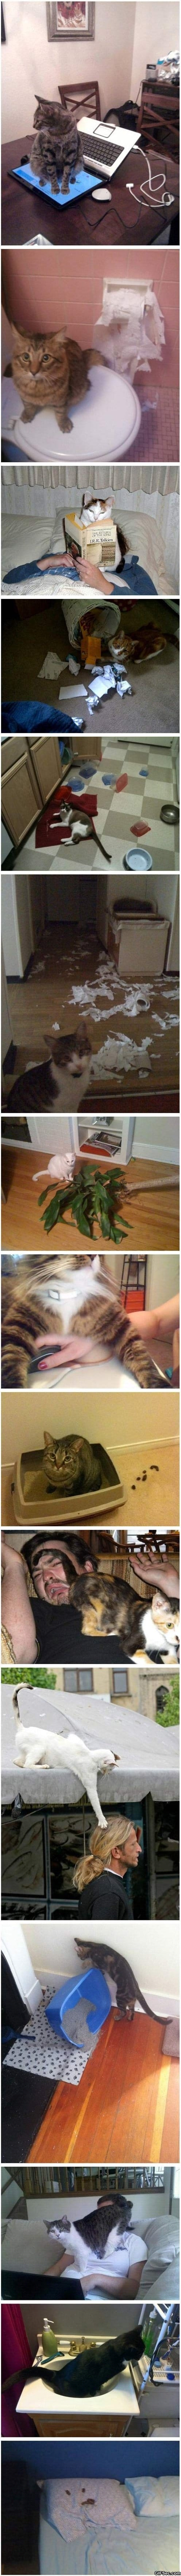 funny-cats-doing-evil-things